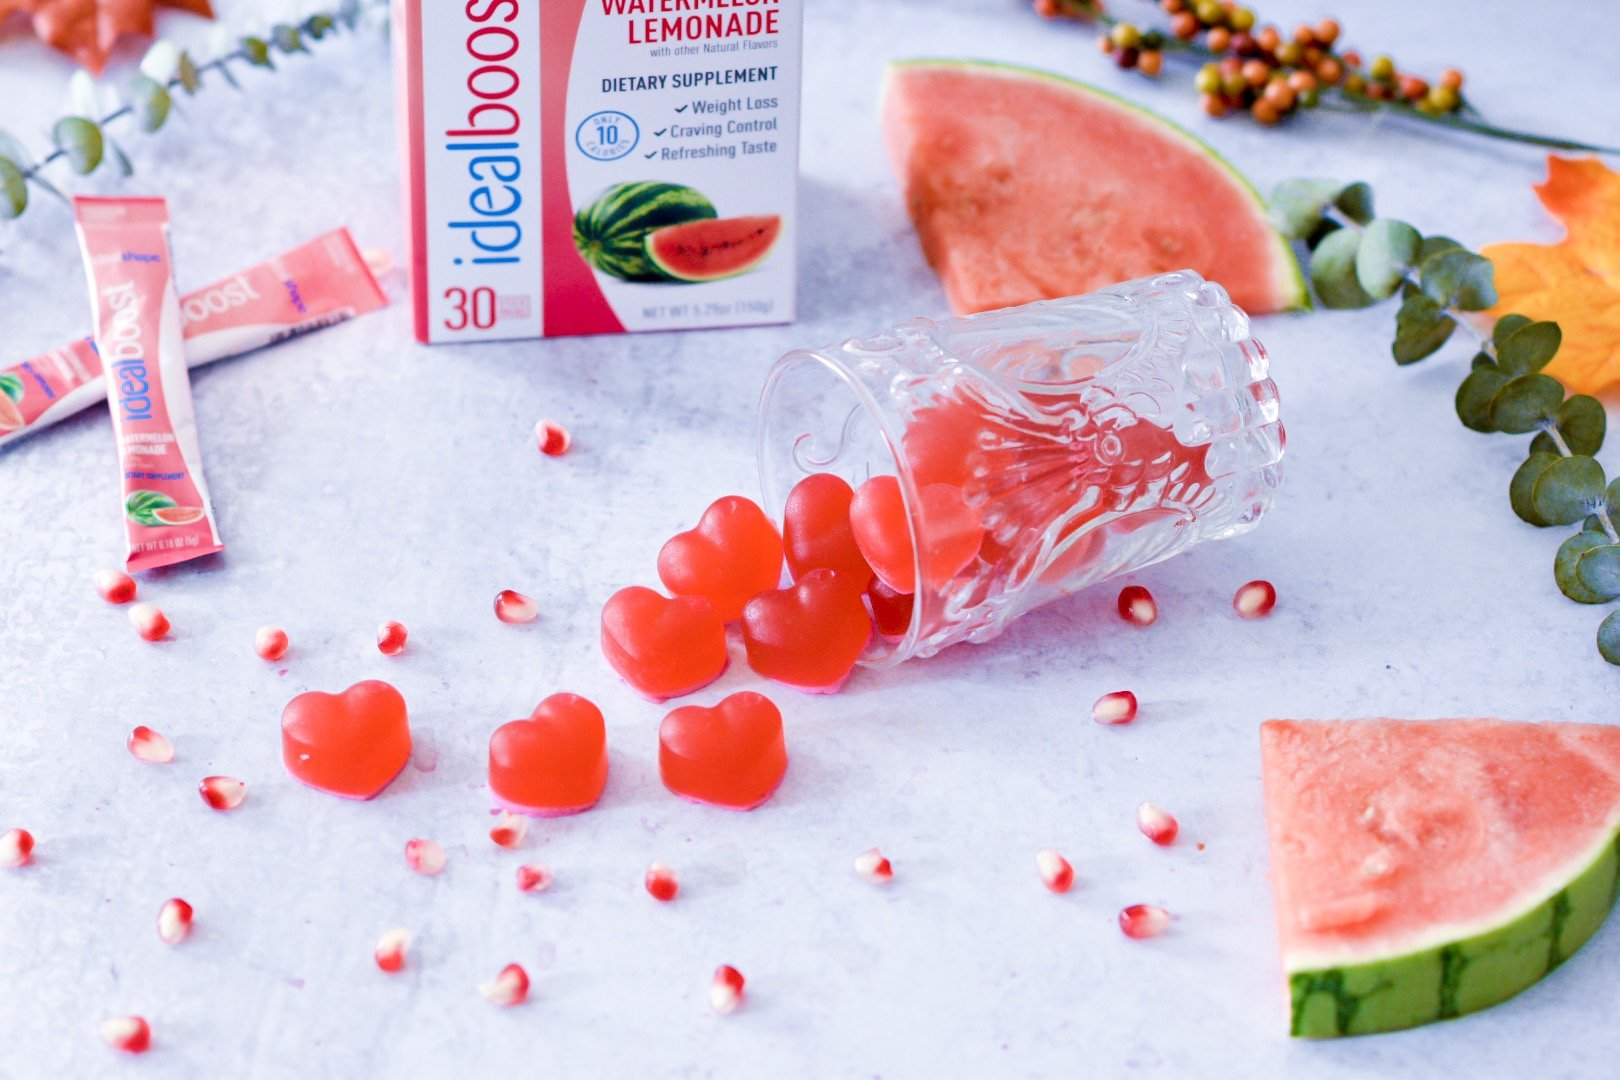 Watermelon Lemonade Gummies